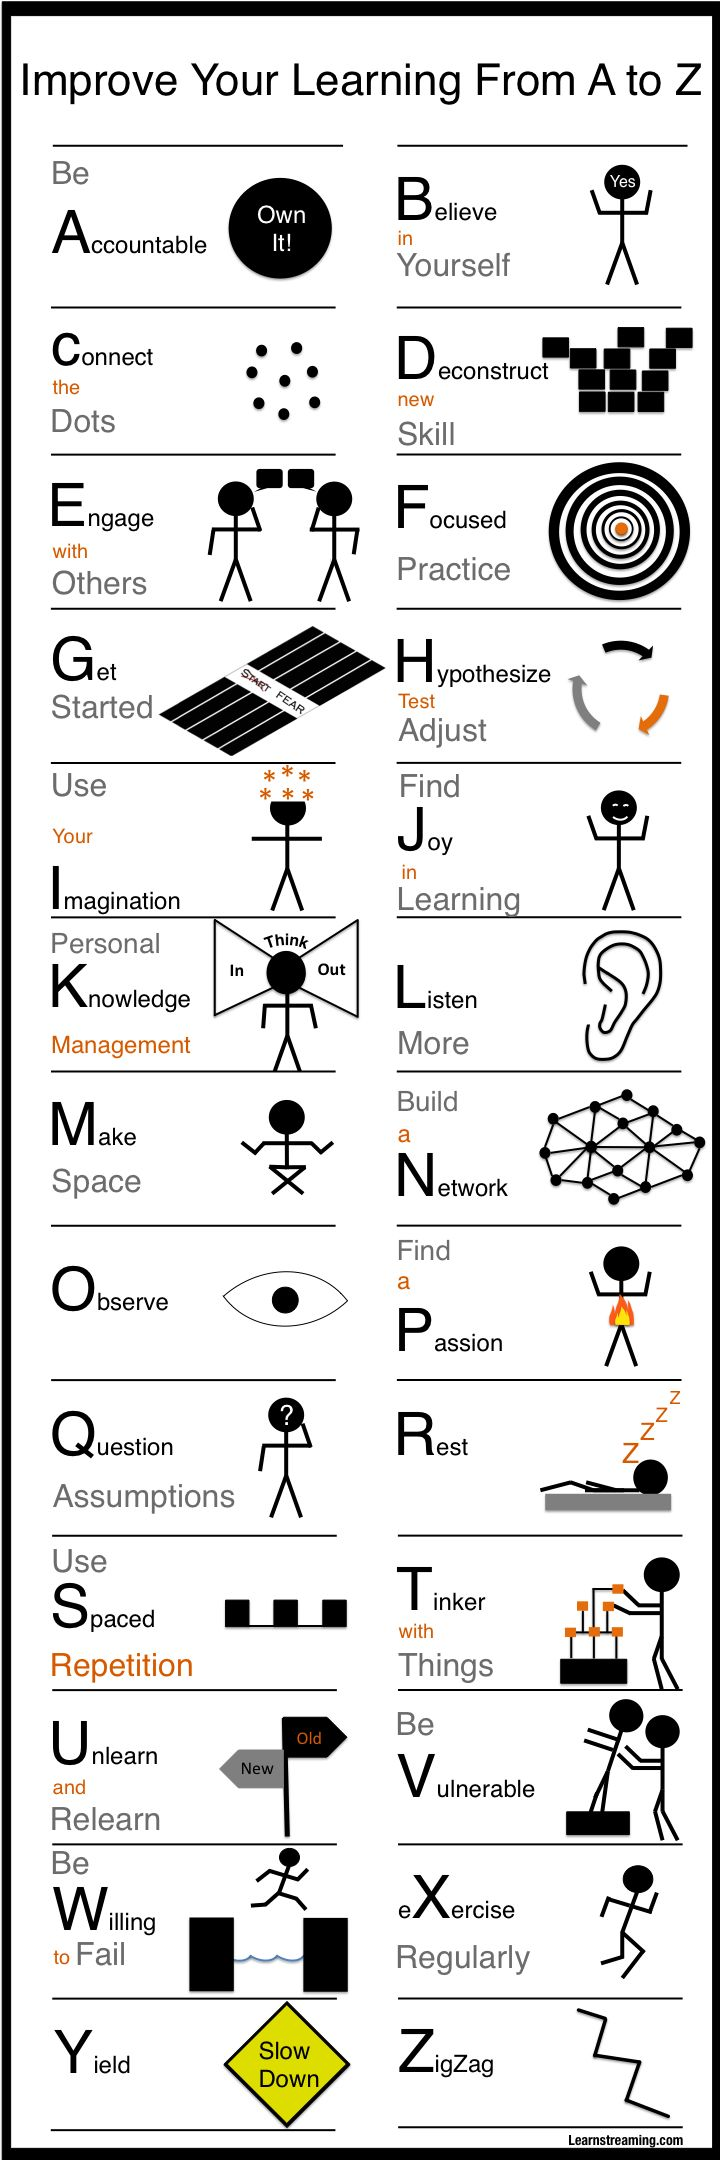 tips to help learners great icon-type symbols for sketchnotes